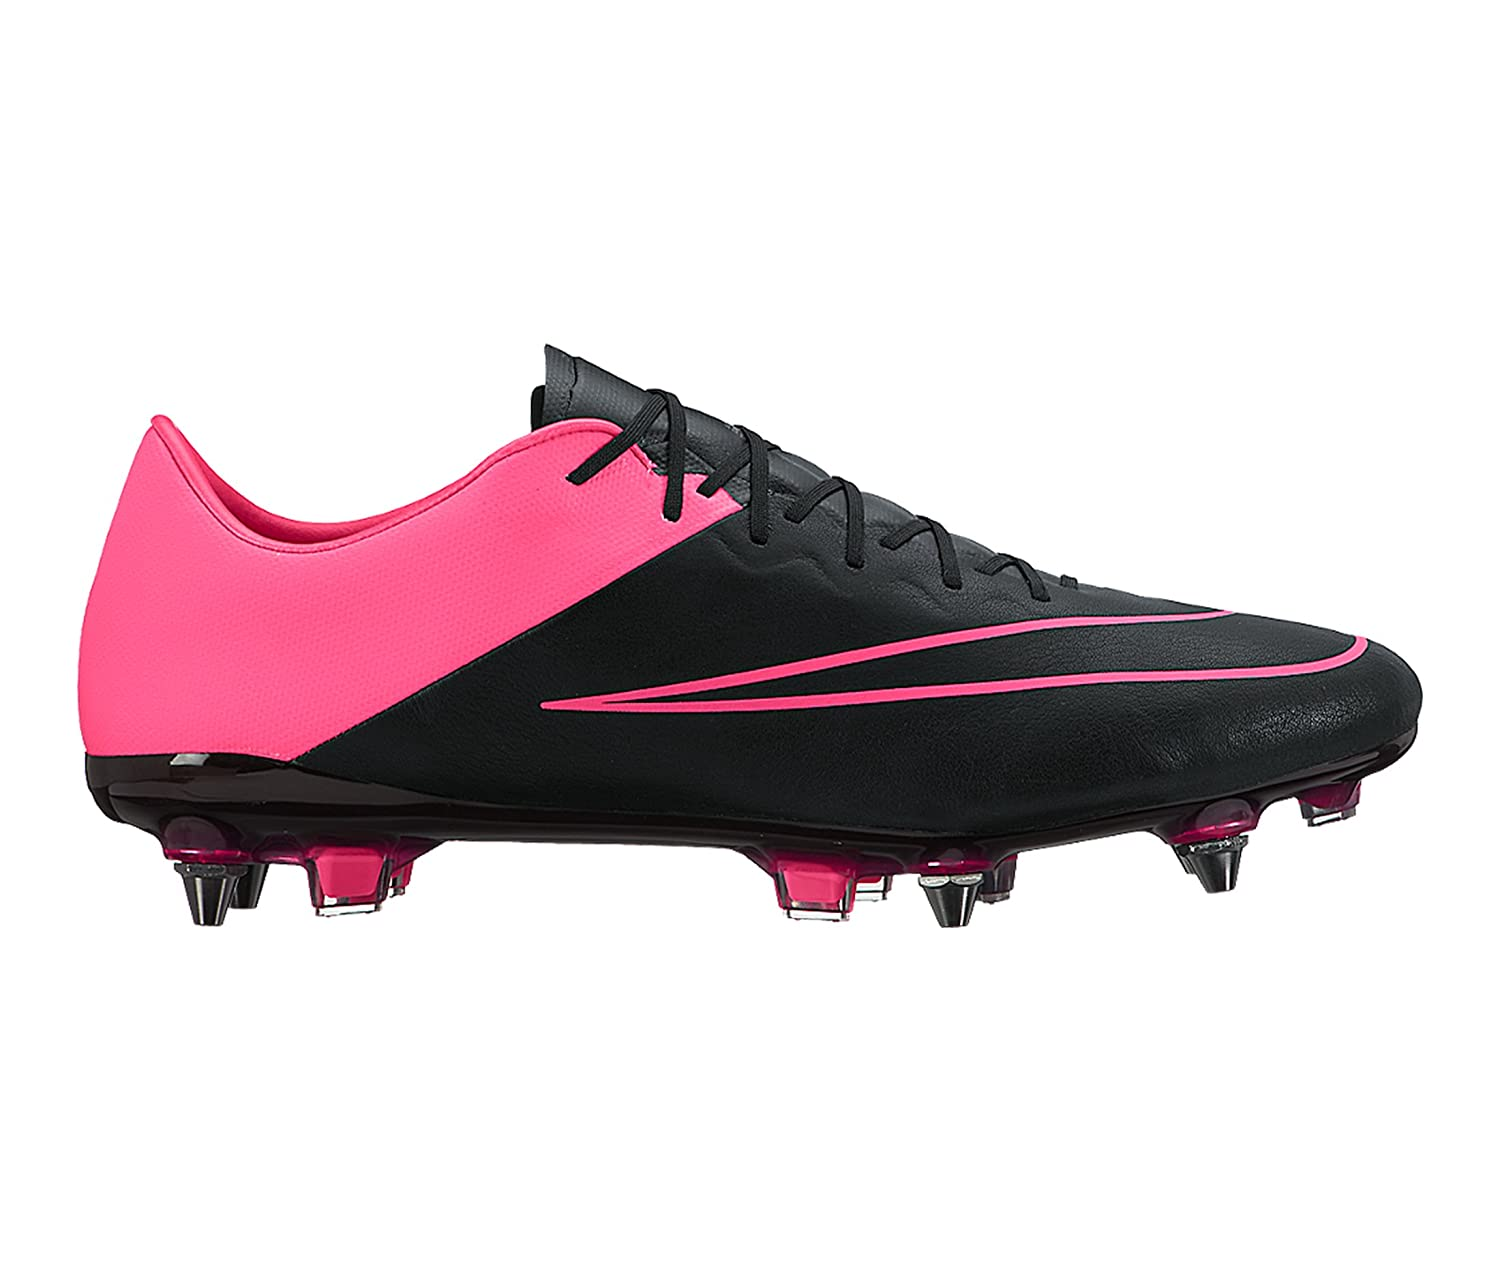 size 40 d79b0 fc7f7 Nike Men s s Mercurial Vapor X Lthr Sg-pro Football Boots  Amazon.co.uk   Shoes   Bags